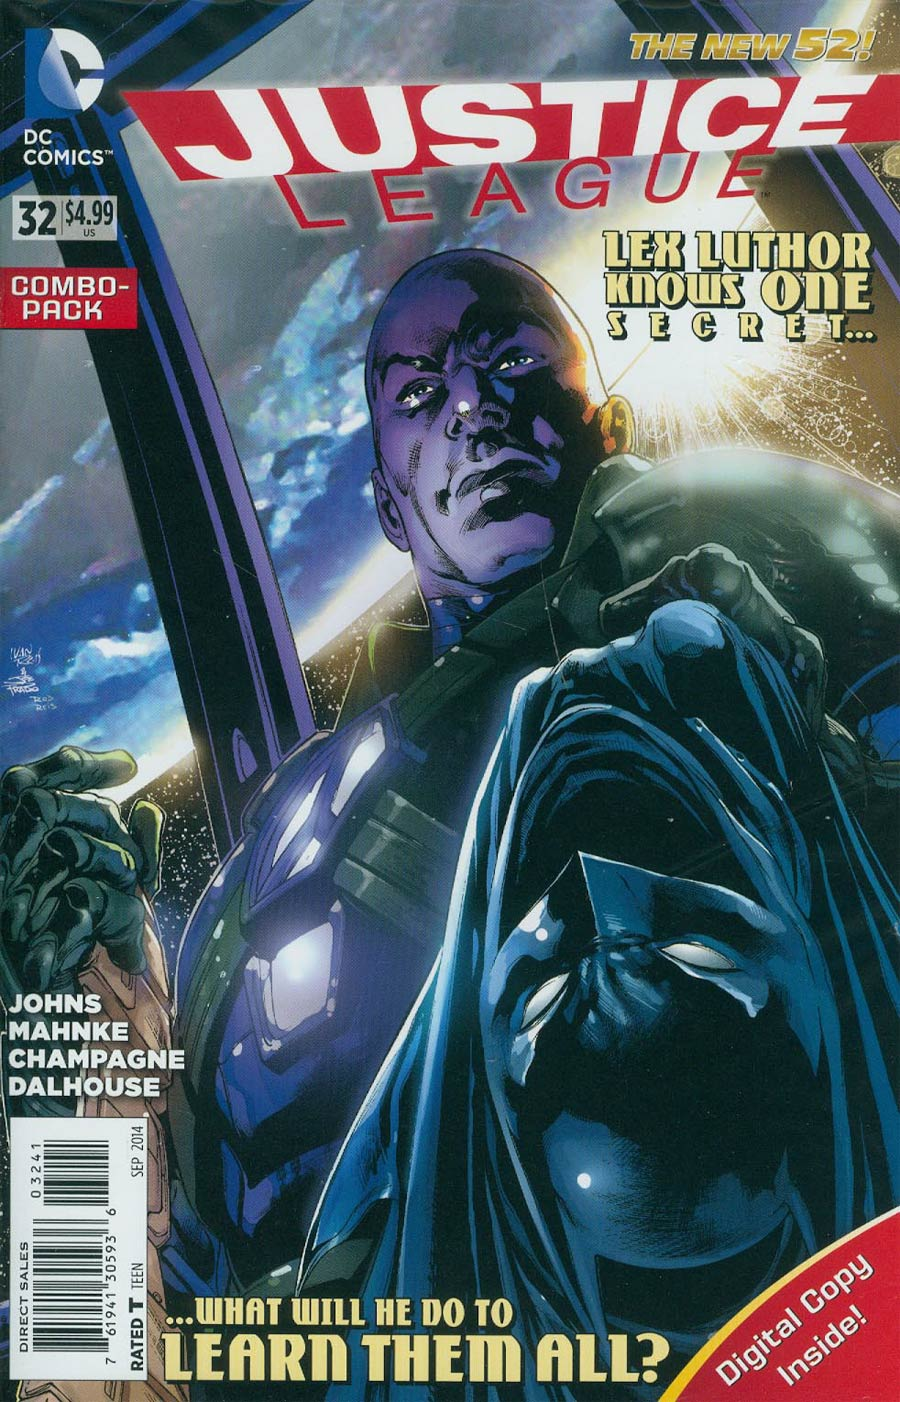 Justice League Vol 2 #32 Cover D Combo Pack Without Polybag